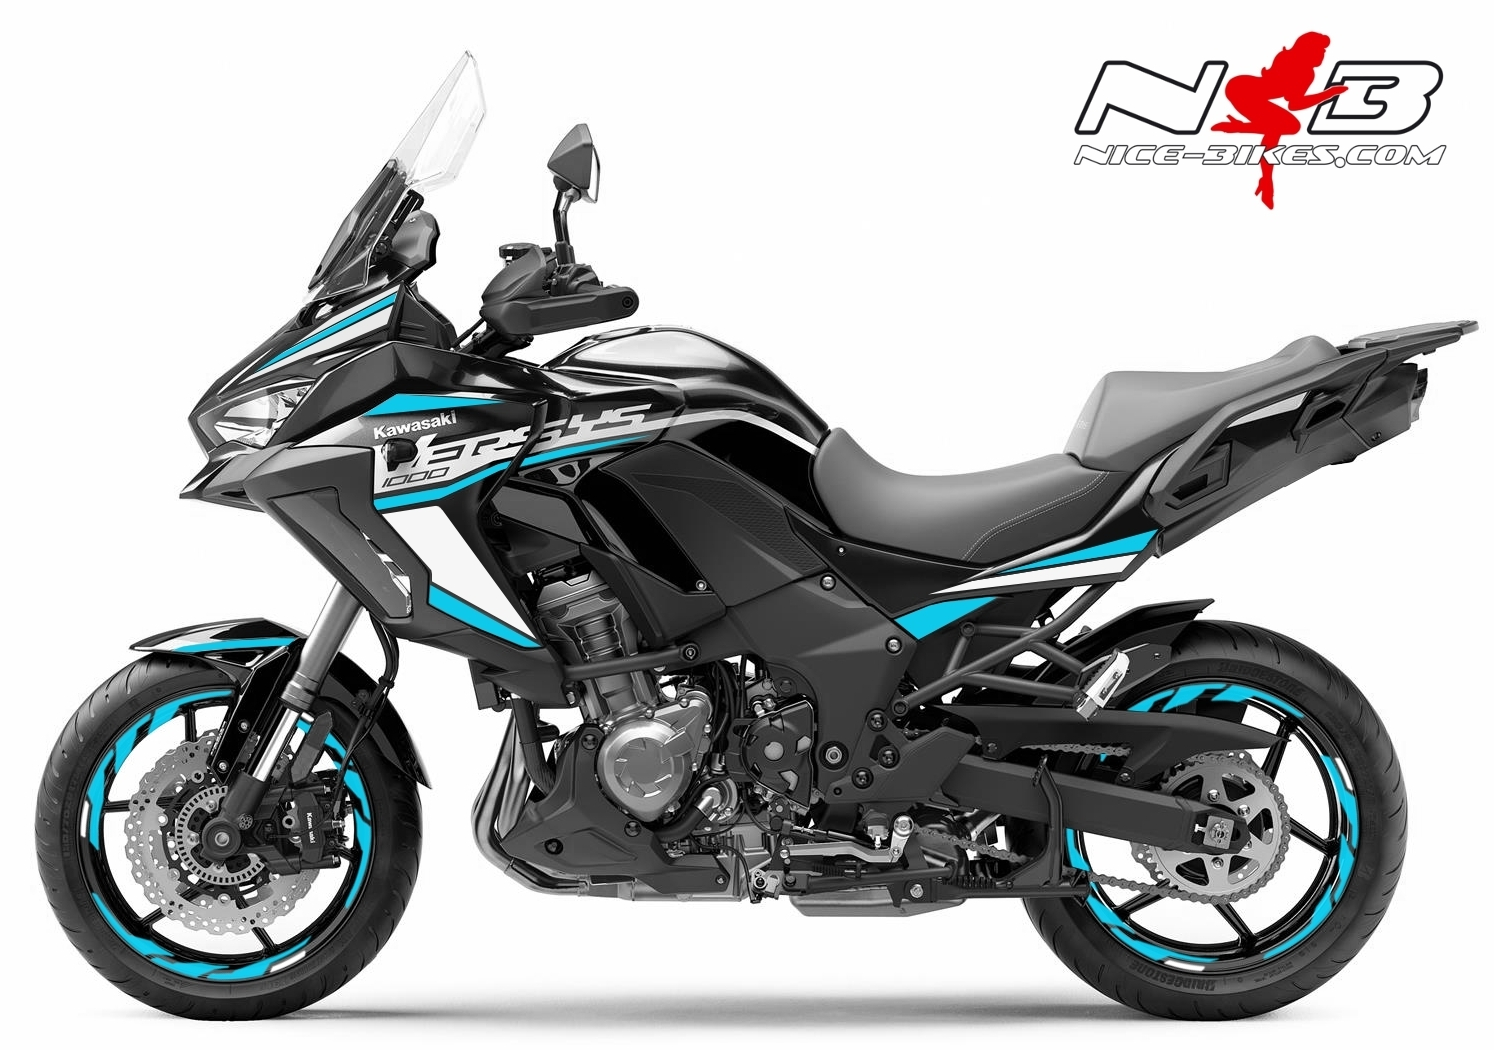 Foliendesign Kawasaki Versys 1000 Bj. 2020 Light Blue